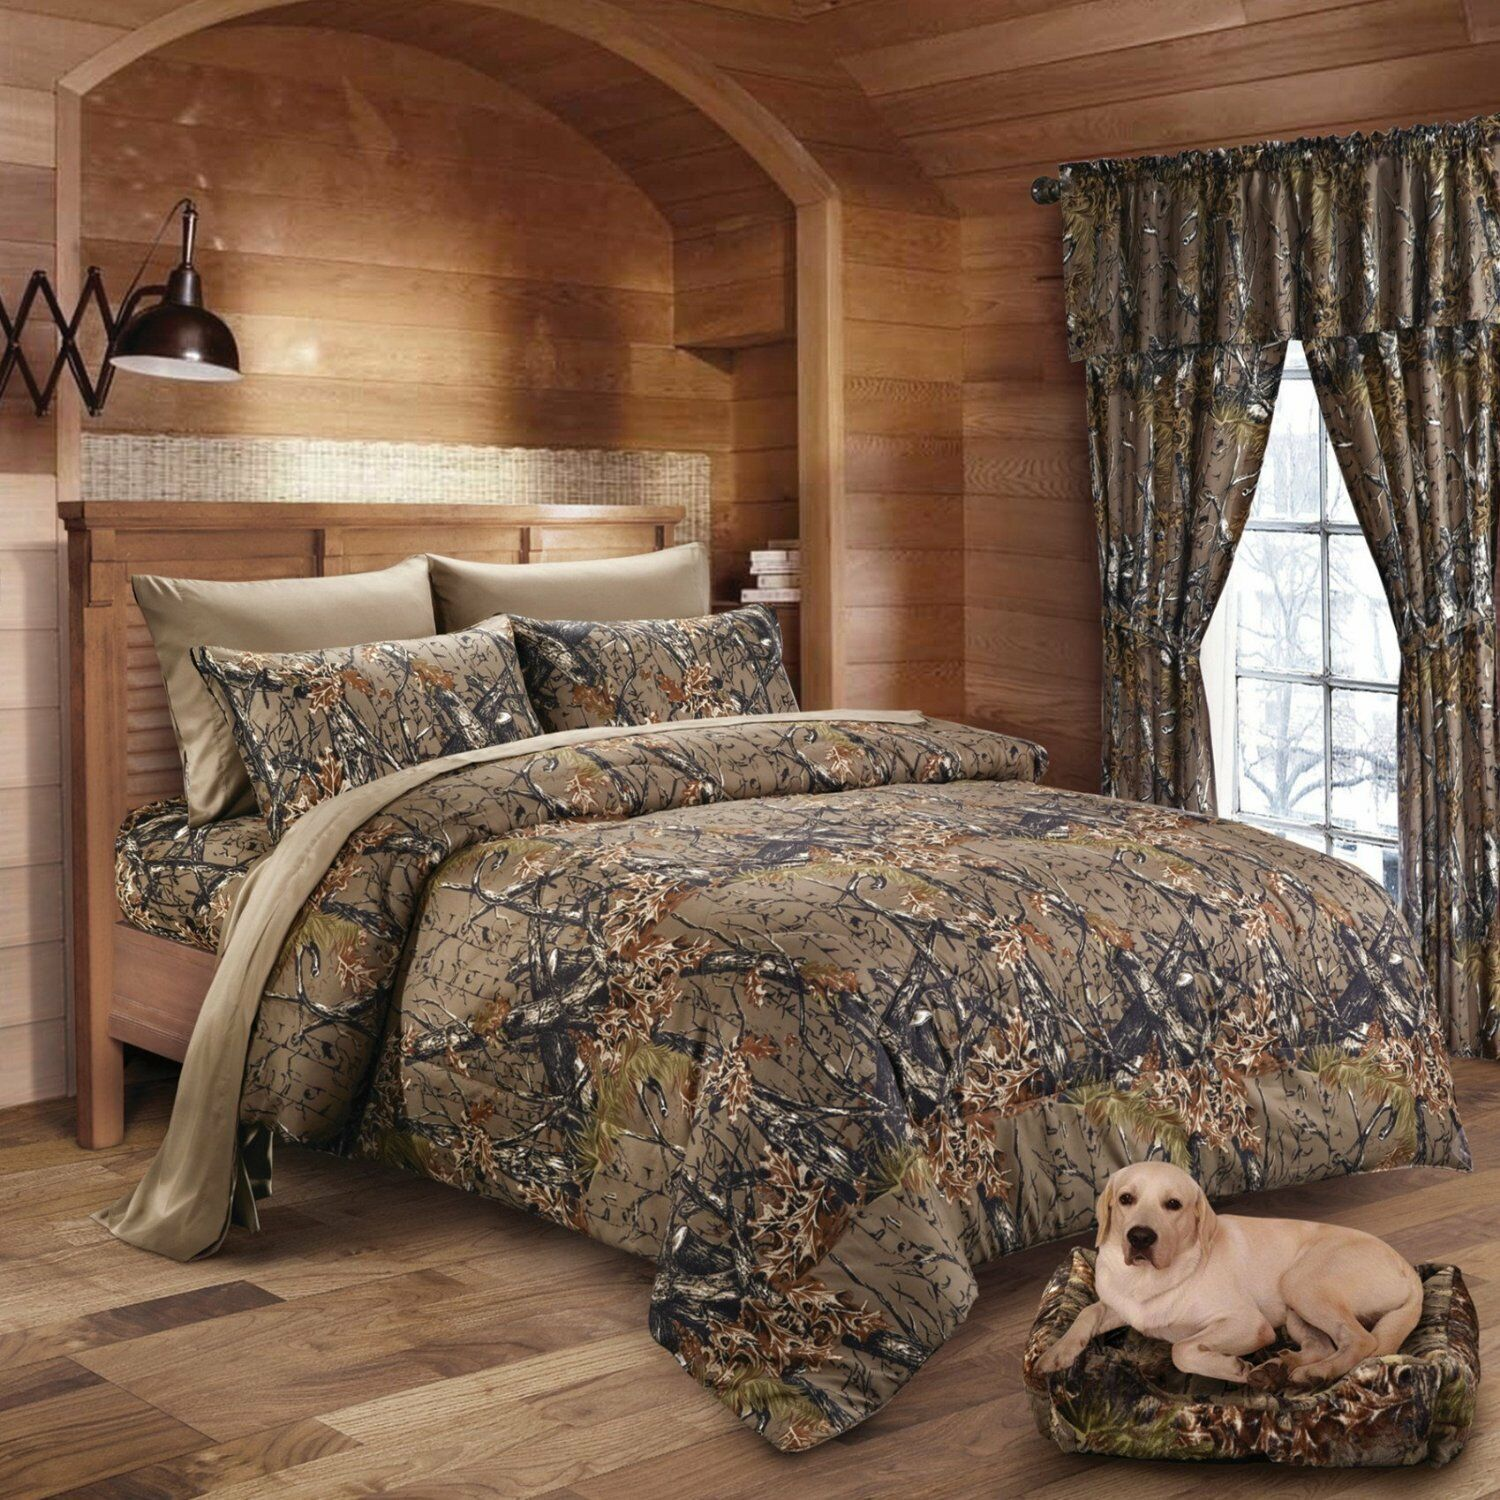 12 PC SET WOODS CAMO COMFORTER AND SHEET SET  FULL  BED IN BAG SET  CAMOUFLAGE